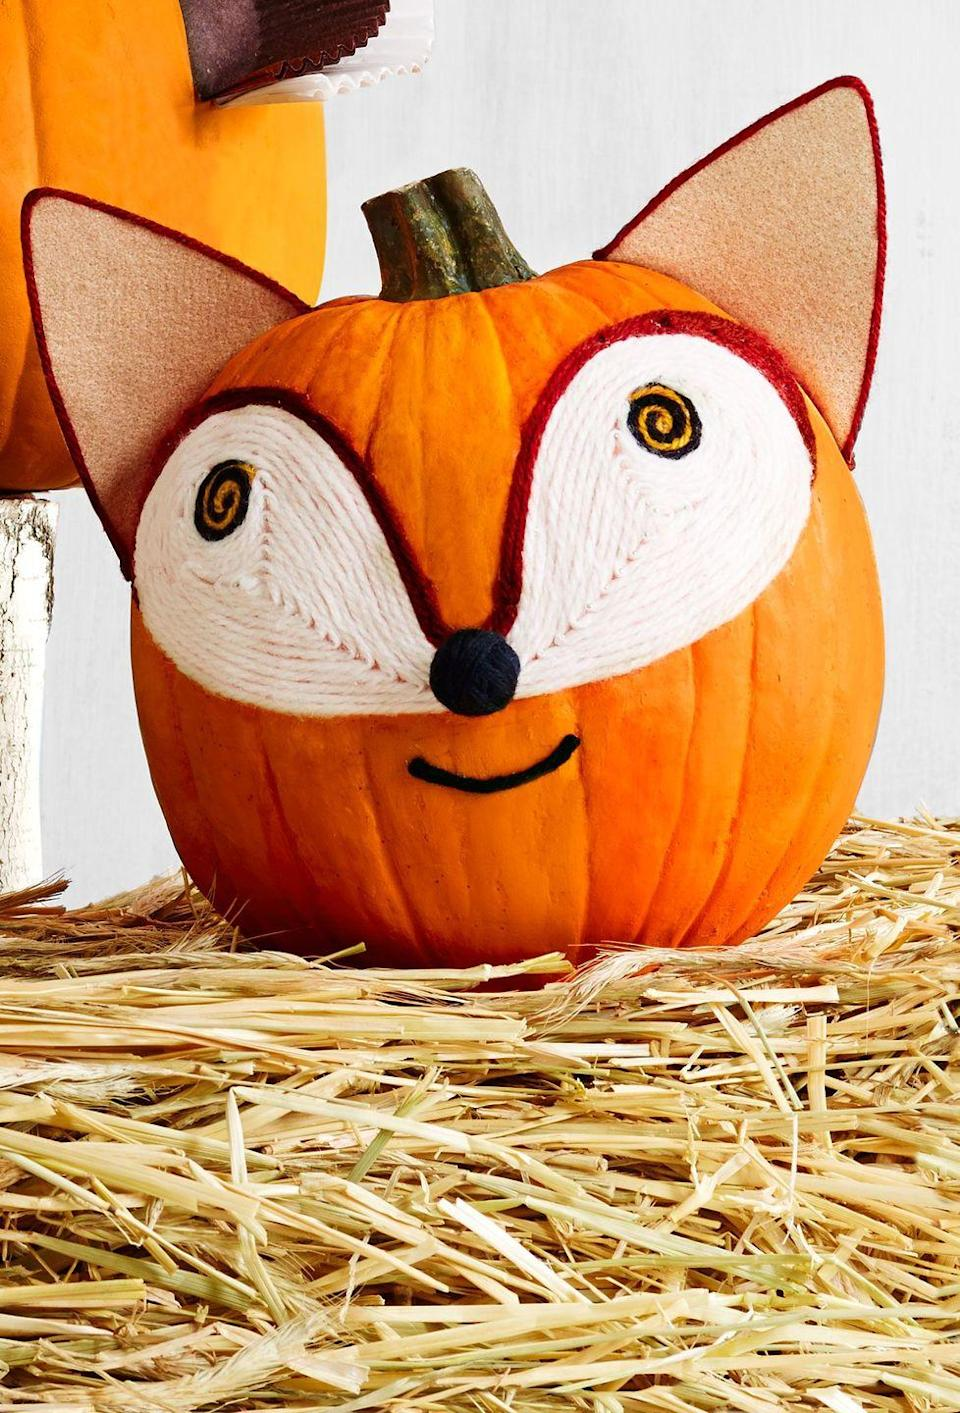 """<p>You don't need to be sly as a fox recreate this friendly fur critter. <br></p><p><strong>Make the pumpkin:</strong> Using this image as a guide, outline the face silhouette with pencil first. For the pupils, hot-glue black and orange yarn in a spiral pattern directly onto the pumpkin. Hot-glue a continuous piece of white yarn in a teardop pattern until the space is fully filled. Outline the eyes with rust yarn, then add a black yarn mouth and pom-pom nose. For ears, glue felt on <a href=""""https://www.amazon.com/Chipboard-Standard-Cardboard-Packaging-Paper/dp/B01CQA0UMO/?tag=syn-yahoo-20&ascsubtag=%5Bartid%7C10050.g.28437255%5Bsrc%7Cyahoo-us"""" rel=""""nofollow noopener"""" target=""""_blank"""" data-ylk=""""slk:cover-weight paper backing"""" class=""""link rapid-noclick-resp"""">cover-weight paper backing</a>. Cut into triangles, trim with rust yarn, and glue to the top of the pumpkin. </p>"""